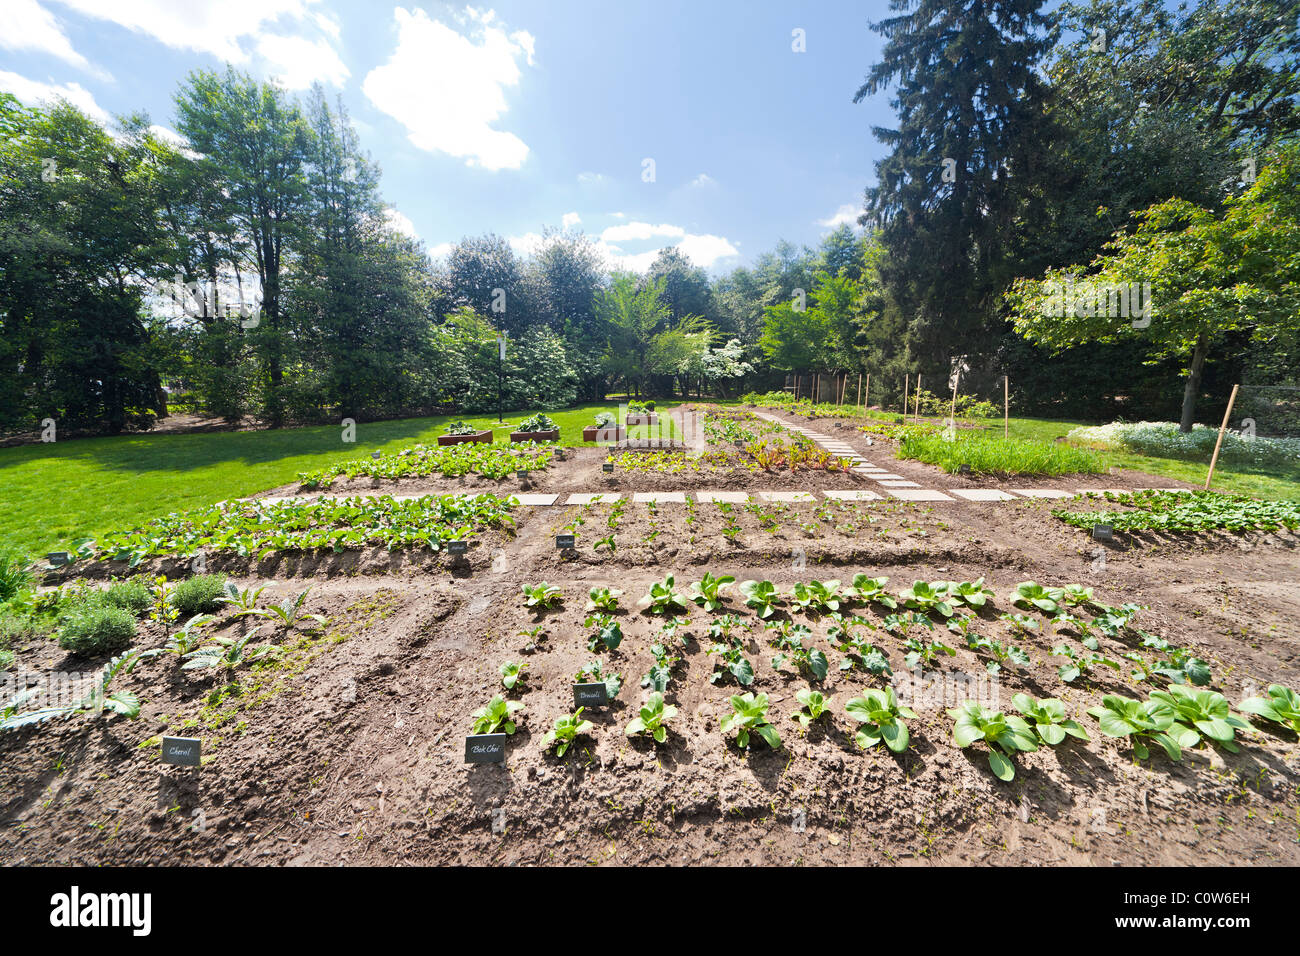 Michelle Obama's organic Kitchen Garden of The White House in spring. Washington DC. Bok Choi; Broccoli, Kohlrabi, - Stock Image